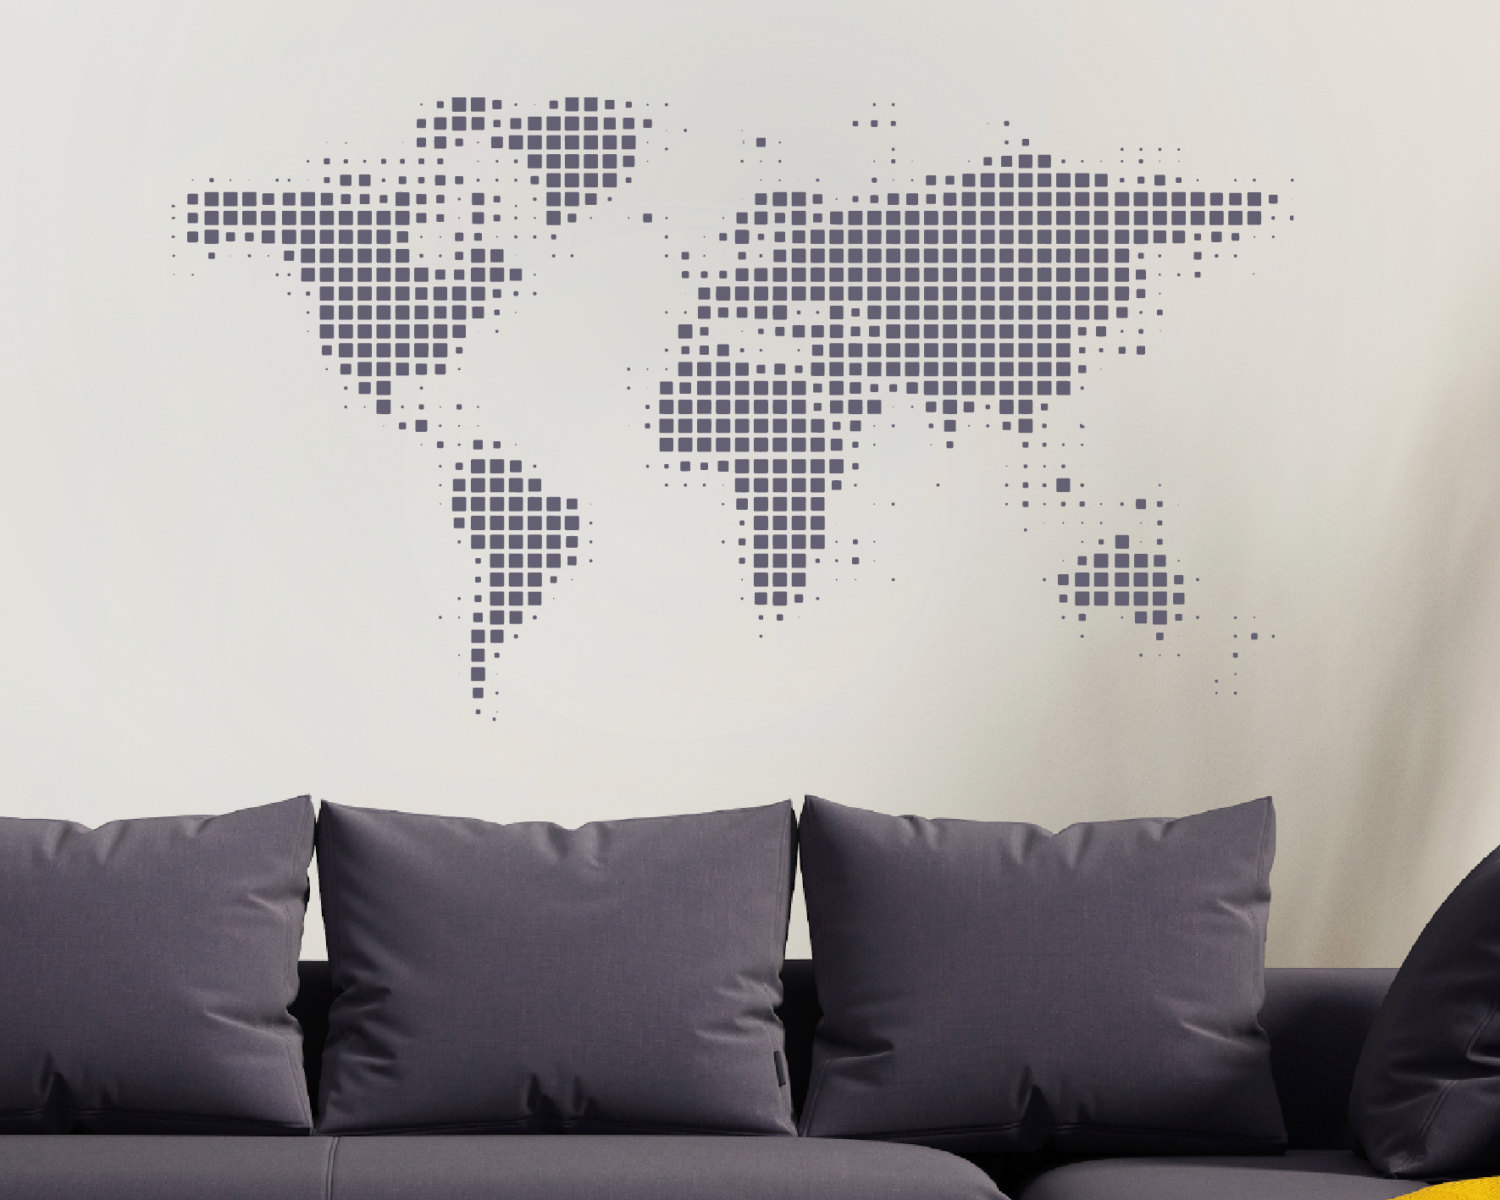 Full Wall World Map.World Map Wall Sticker World Wall Sticker World Map World